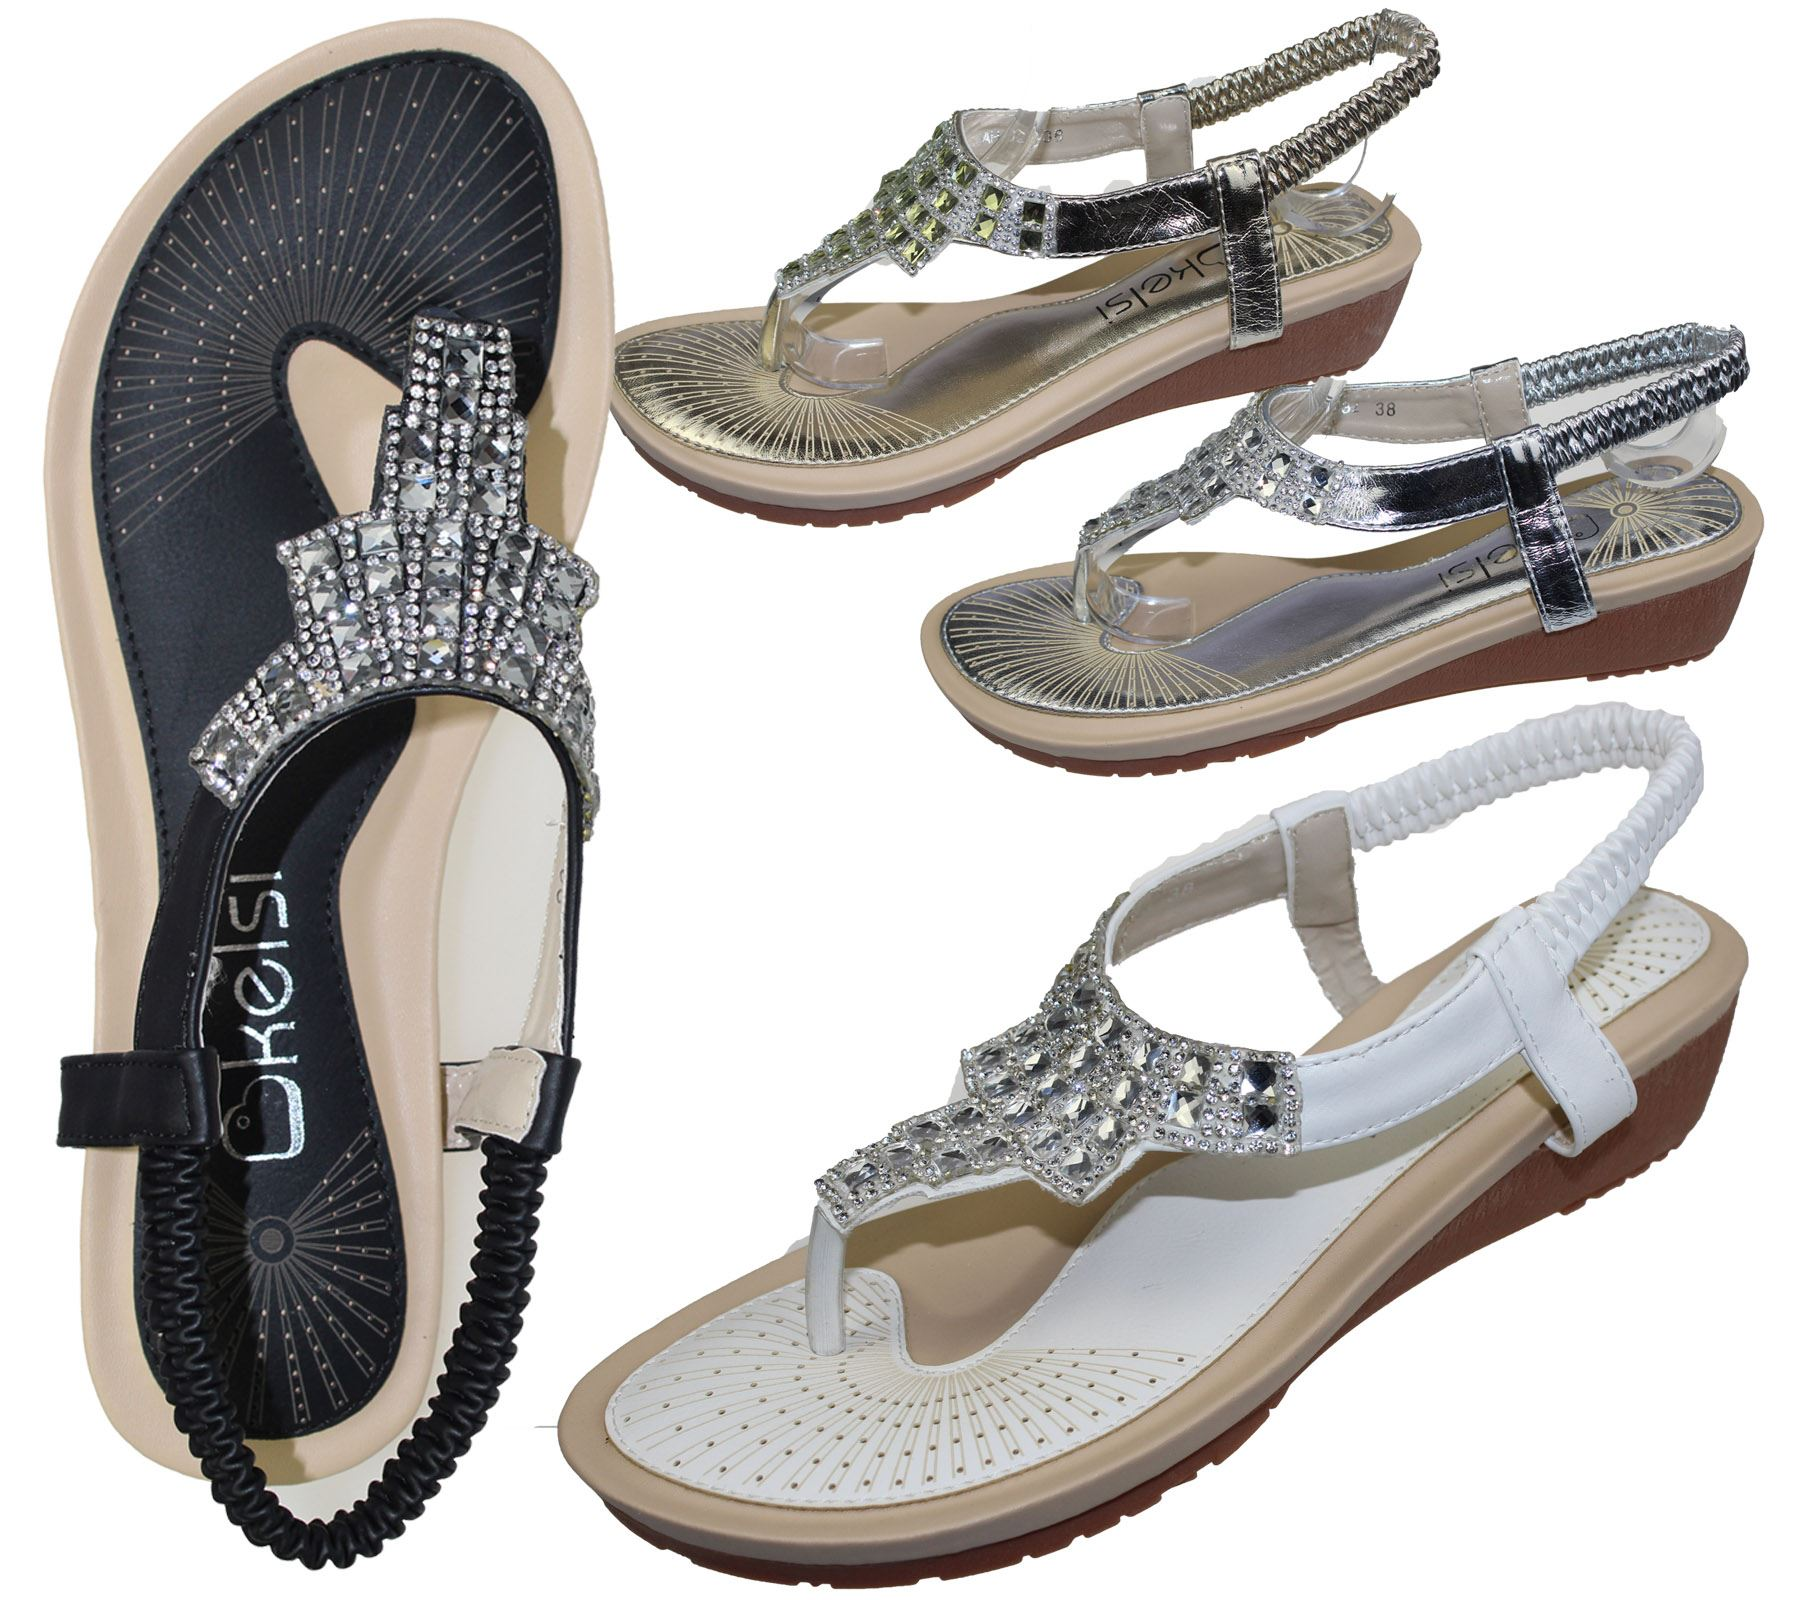 LADIES WOMENS NEW GLADIATOR DIAMANTE BRIDAL BLING SUMMER SANDALS FLIP FLOP SHOES